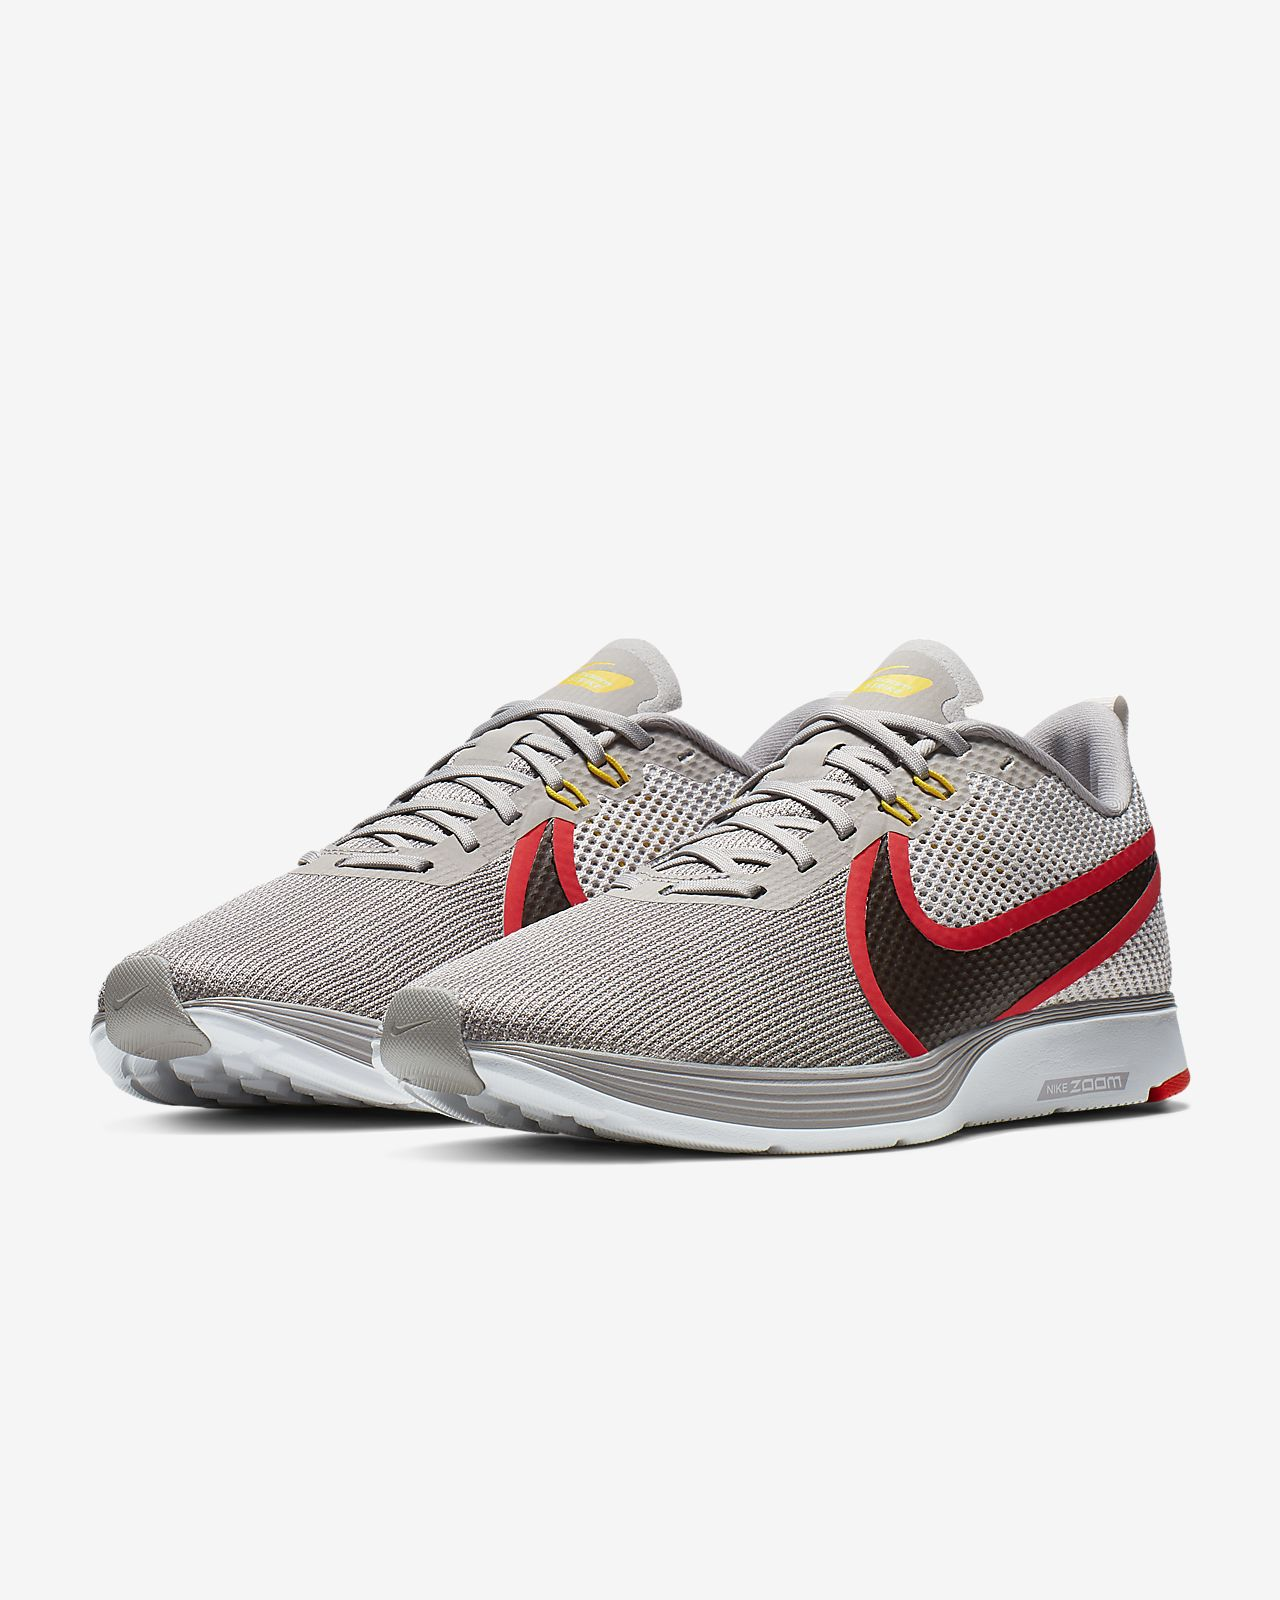 acd8e683ac7a Nike Zoom Strike 2 Men s Running Shoe. Nike.com CA